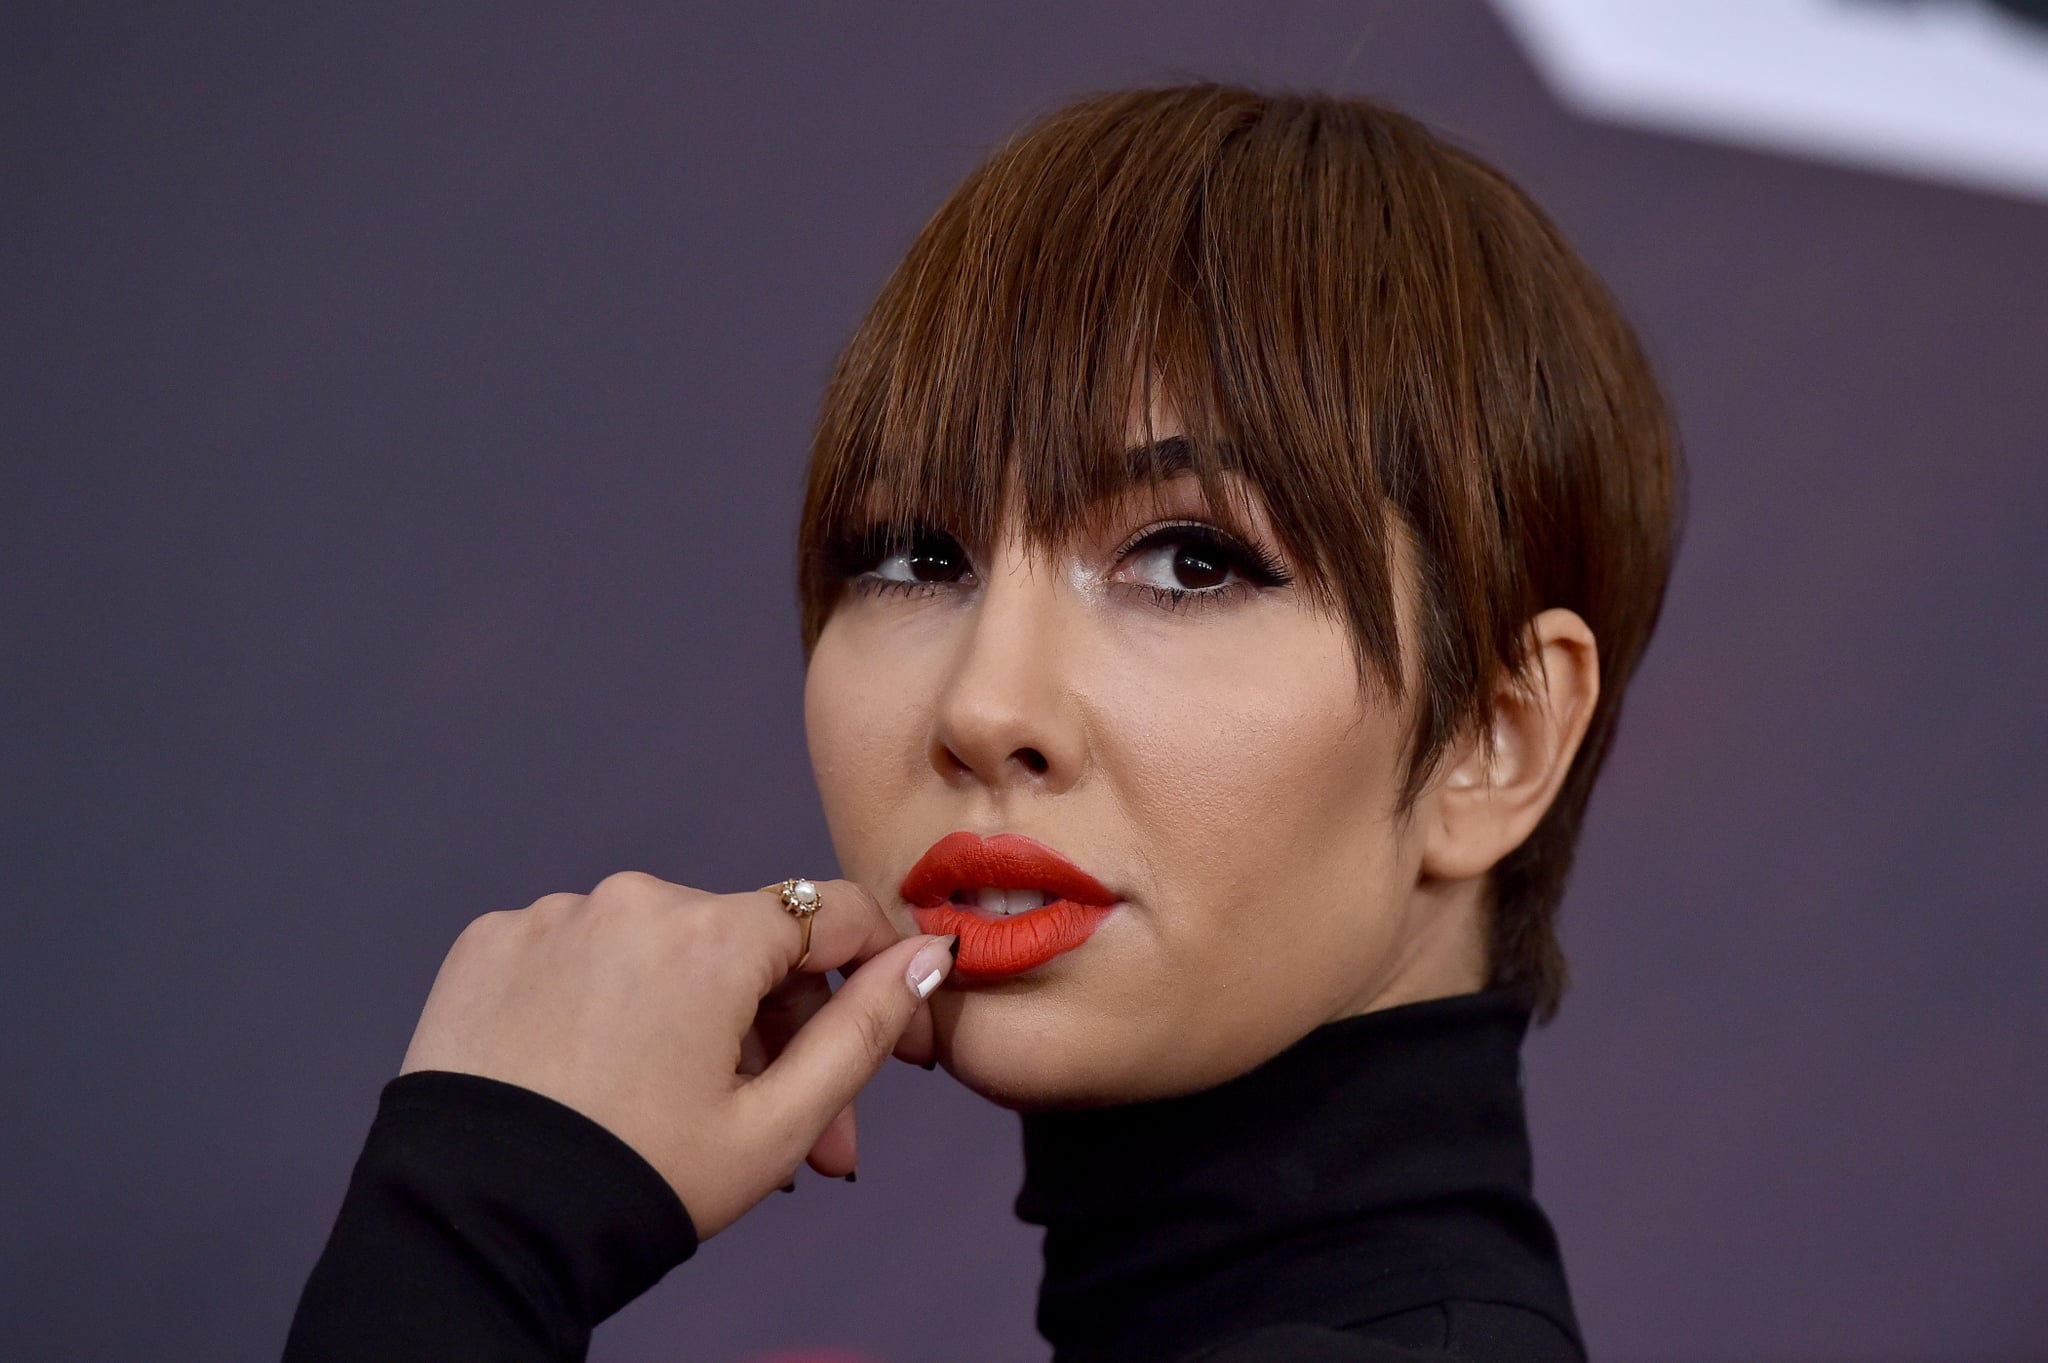 INGLEWOOD, CA - MARCH 11:  Actress Jackie Cruz attends the 2018 iHeartRadio Music Awards at the Forum on March 11, 2018 in Inglewood, California.  (Photo by Axelle/Bauer-Griffin/FilmMagic)